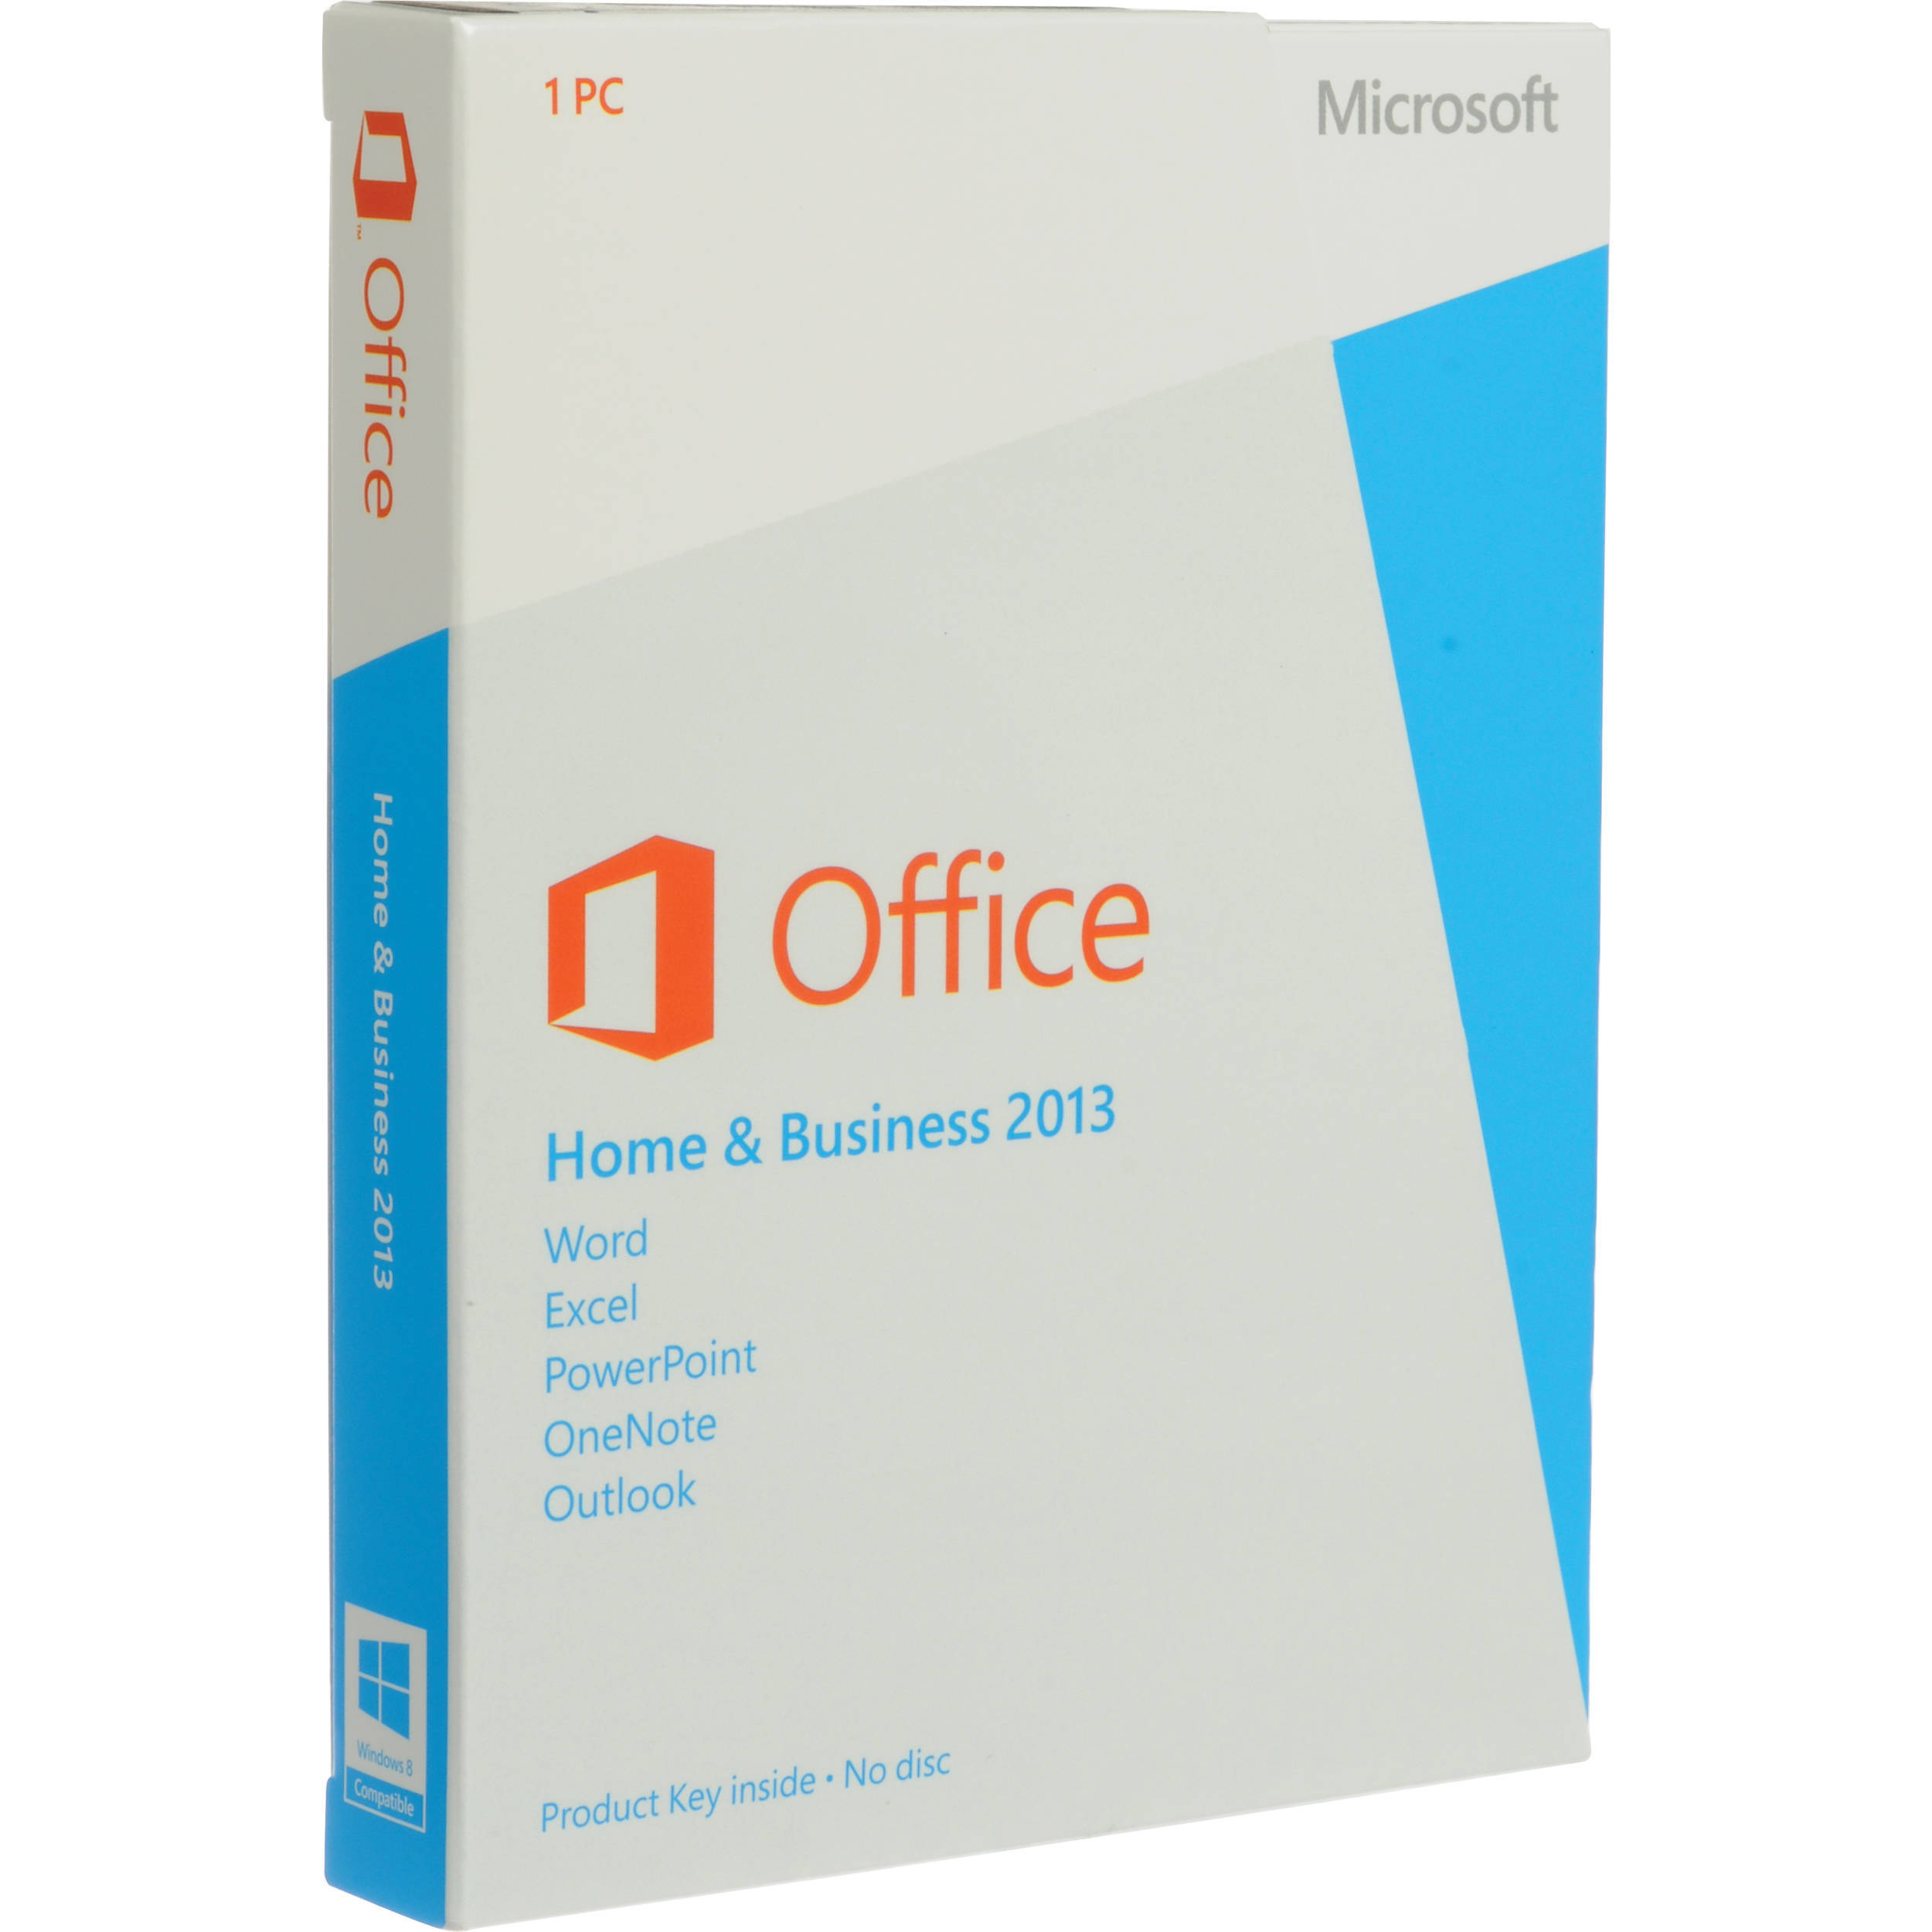 Microsoft Office Home & Business 2013 for Windows (Download)